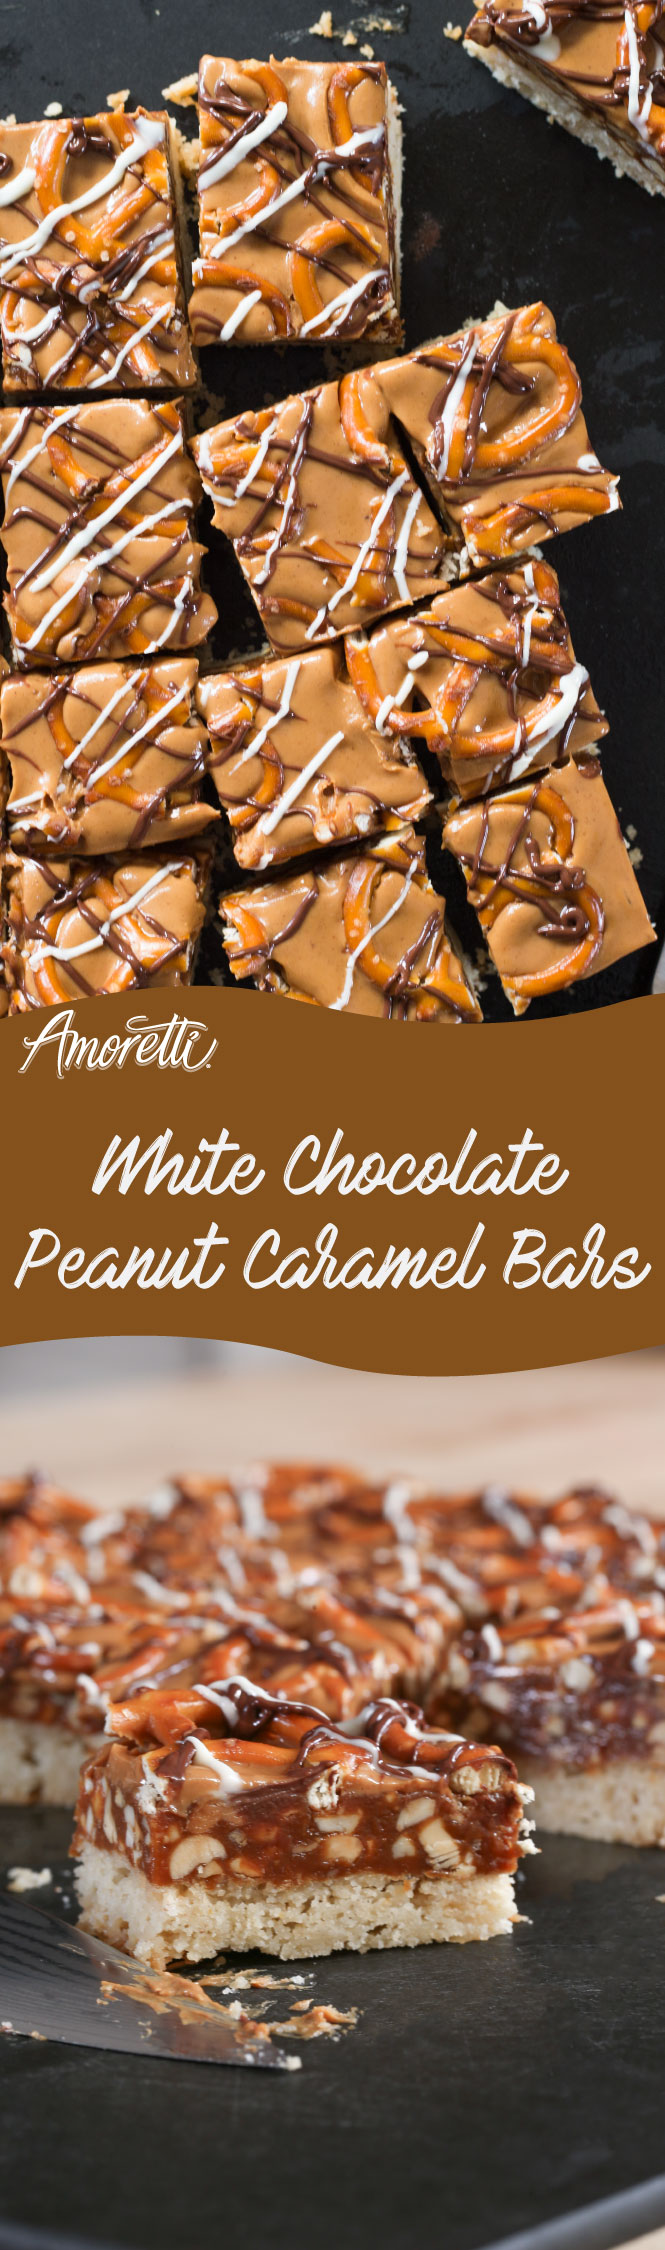 Decadent, crunchy and chewy; you'll simply fall in love with these White Chocolate Peanut Caramel Bars!